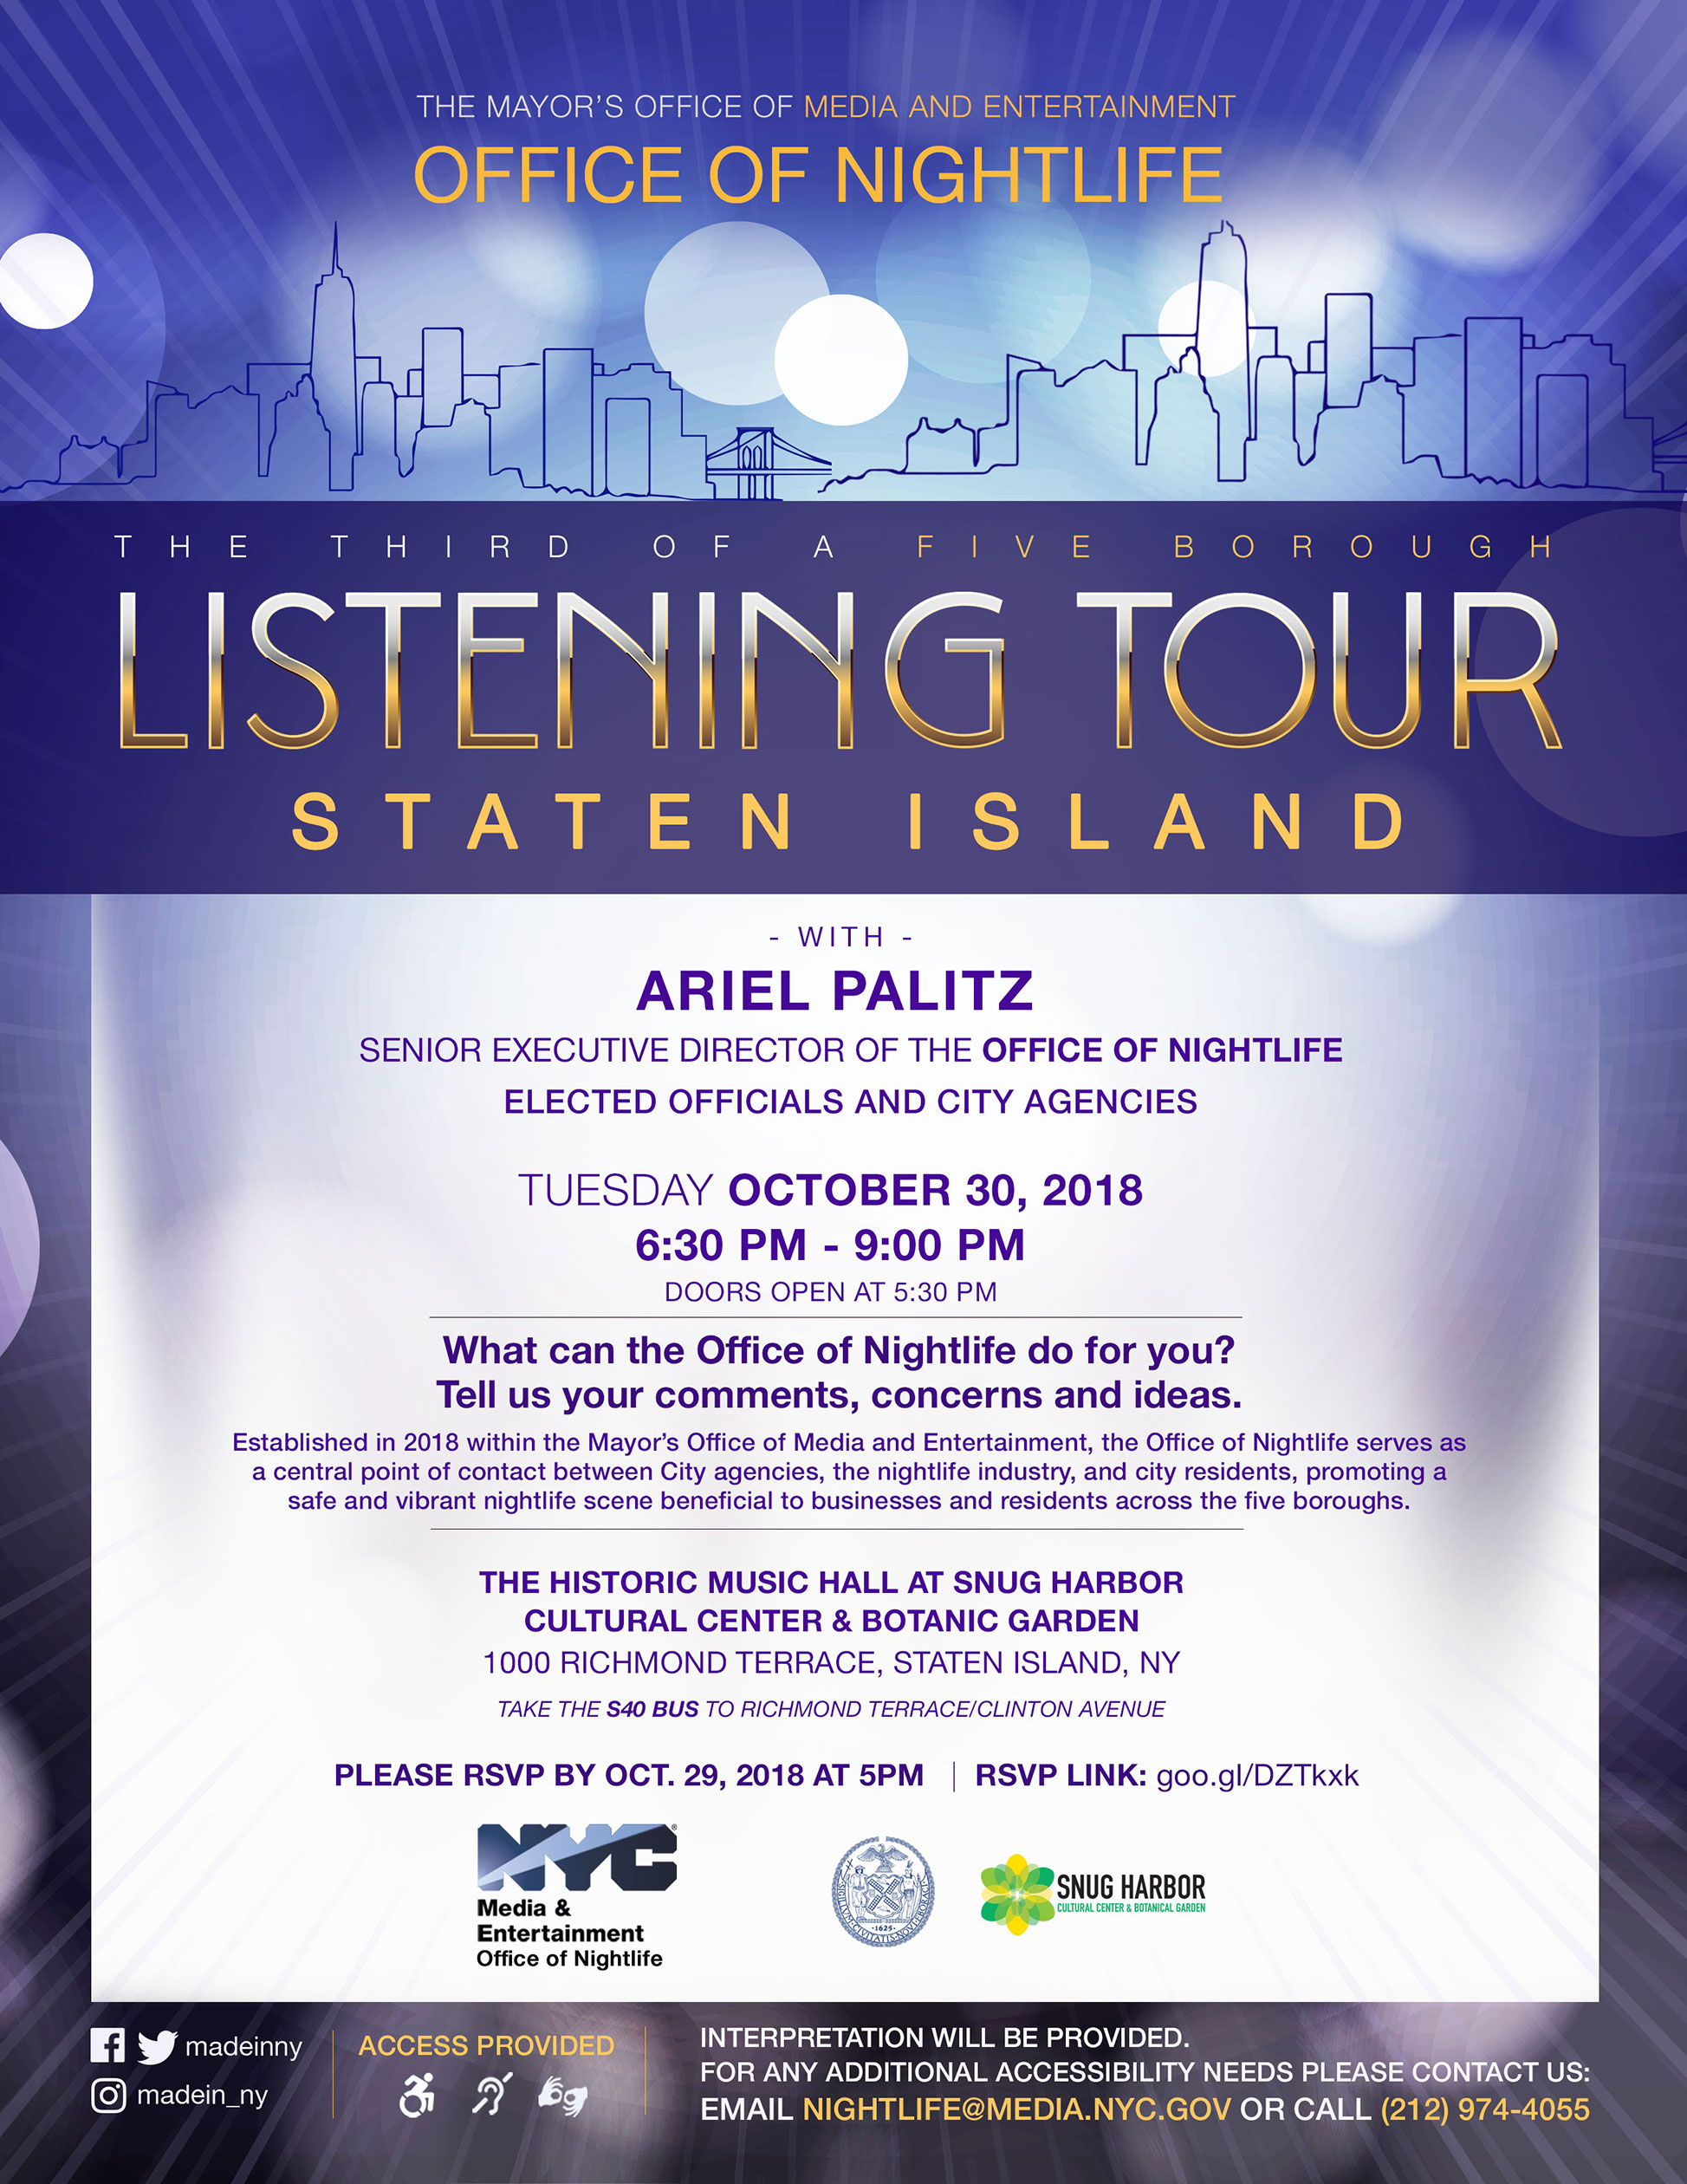 Listening Tour: The Office of Nightlife at the NYC Mayor's Office of Media and Entertainment